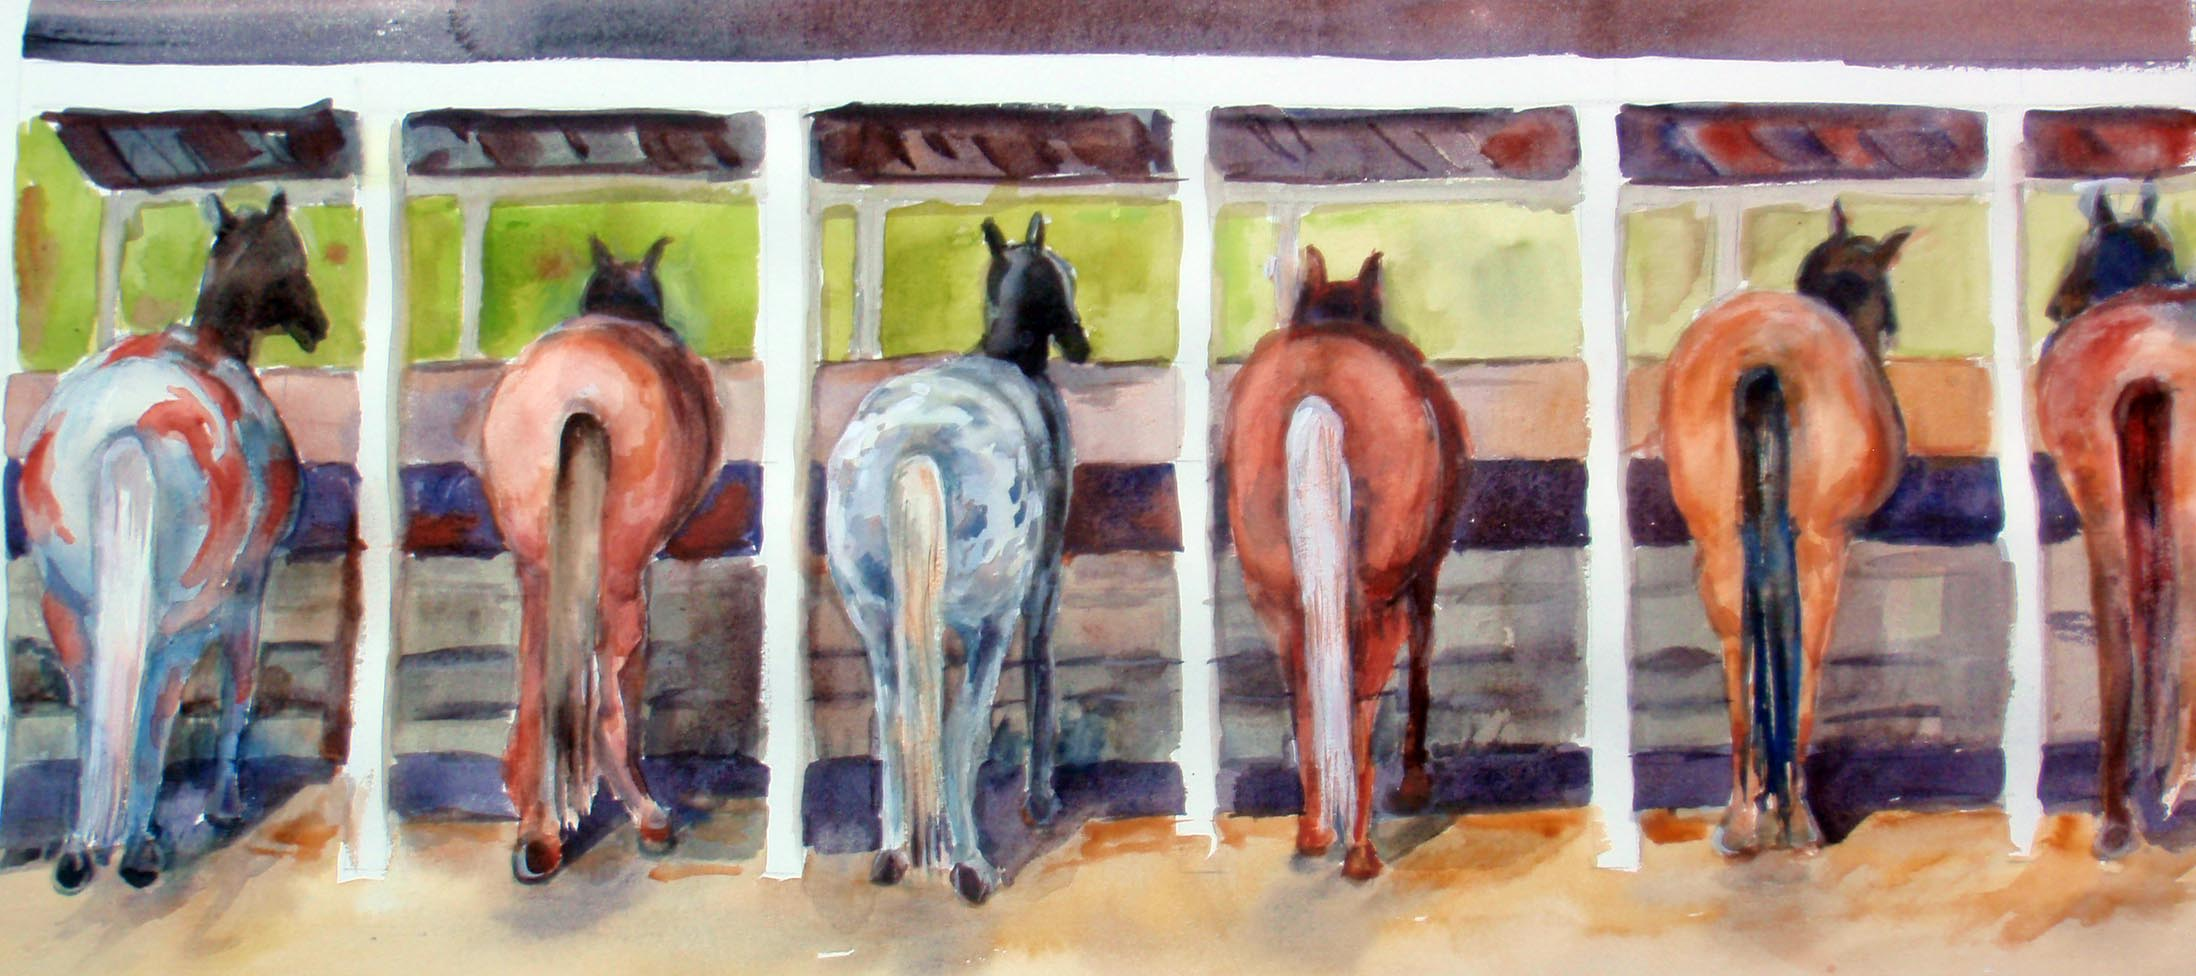 Horses from the Other End